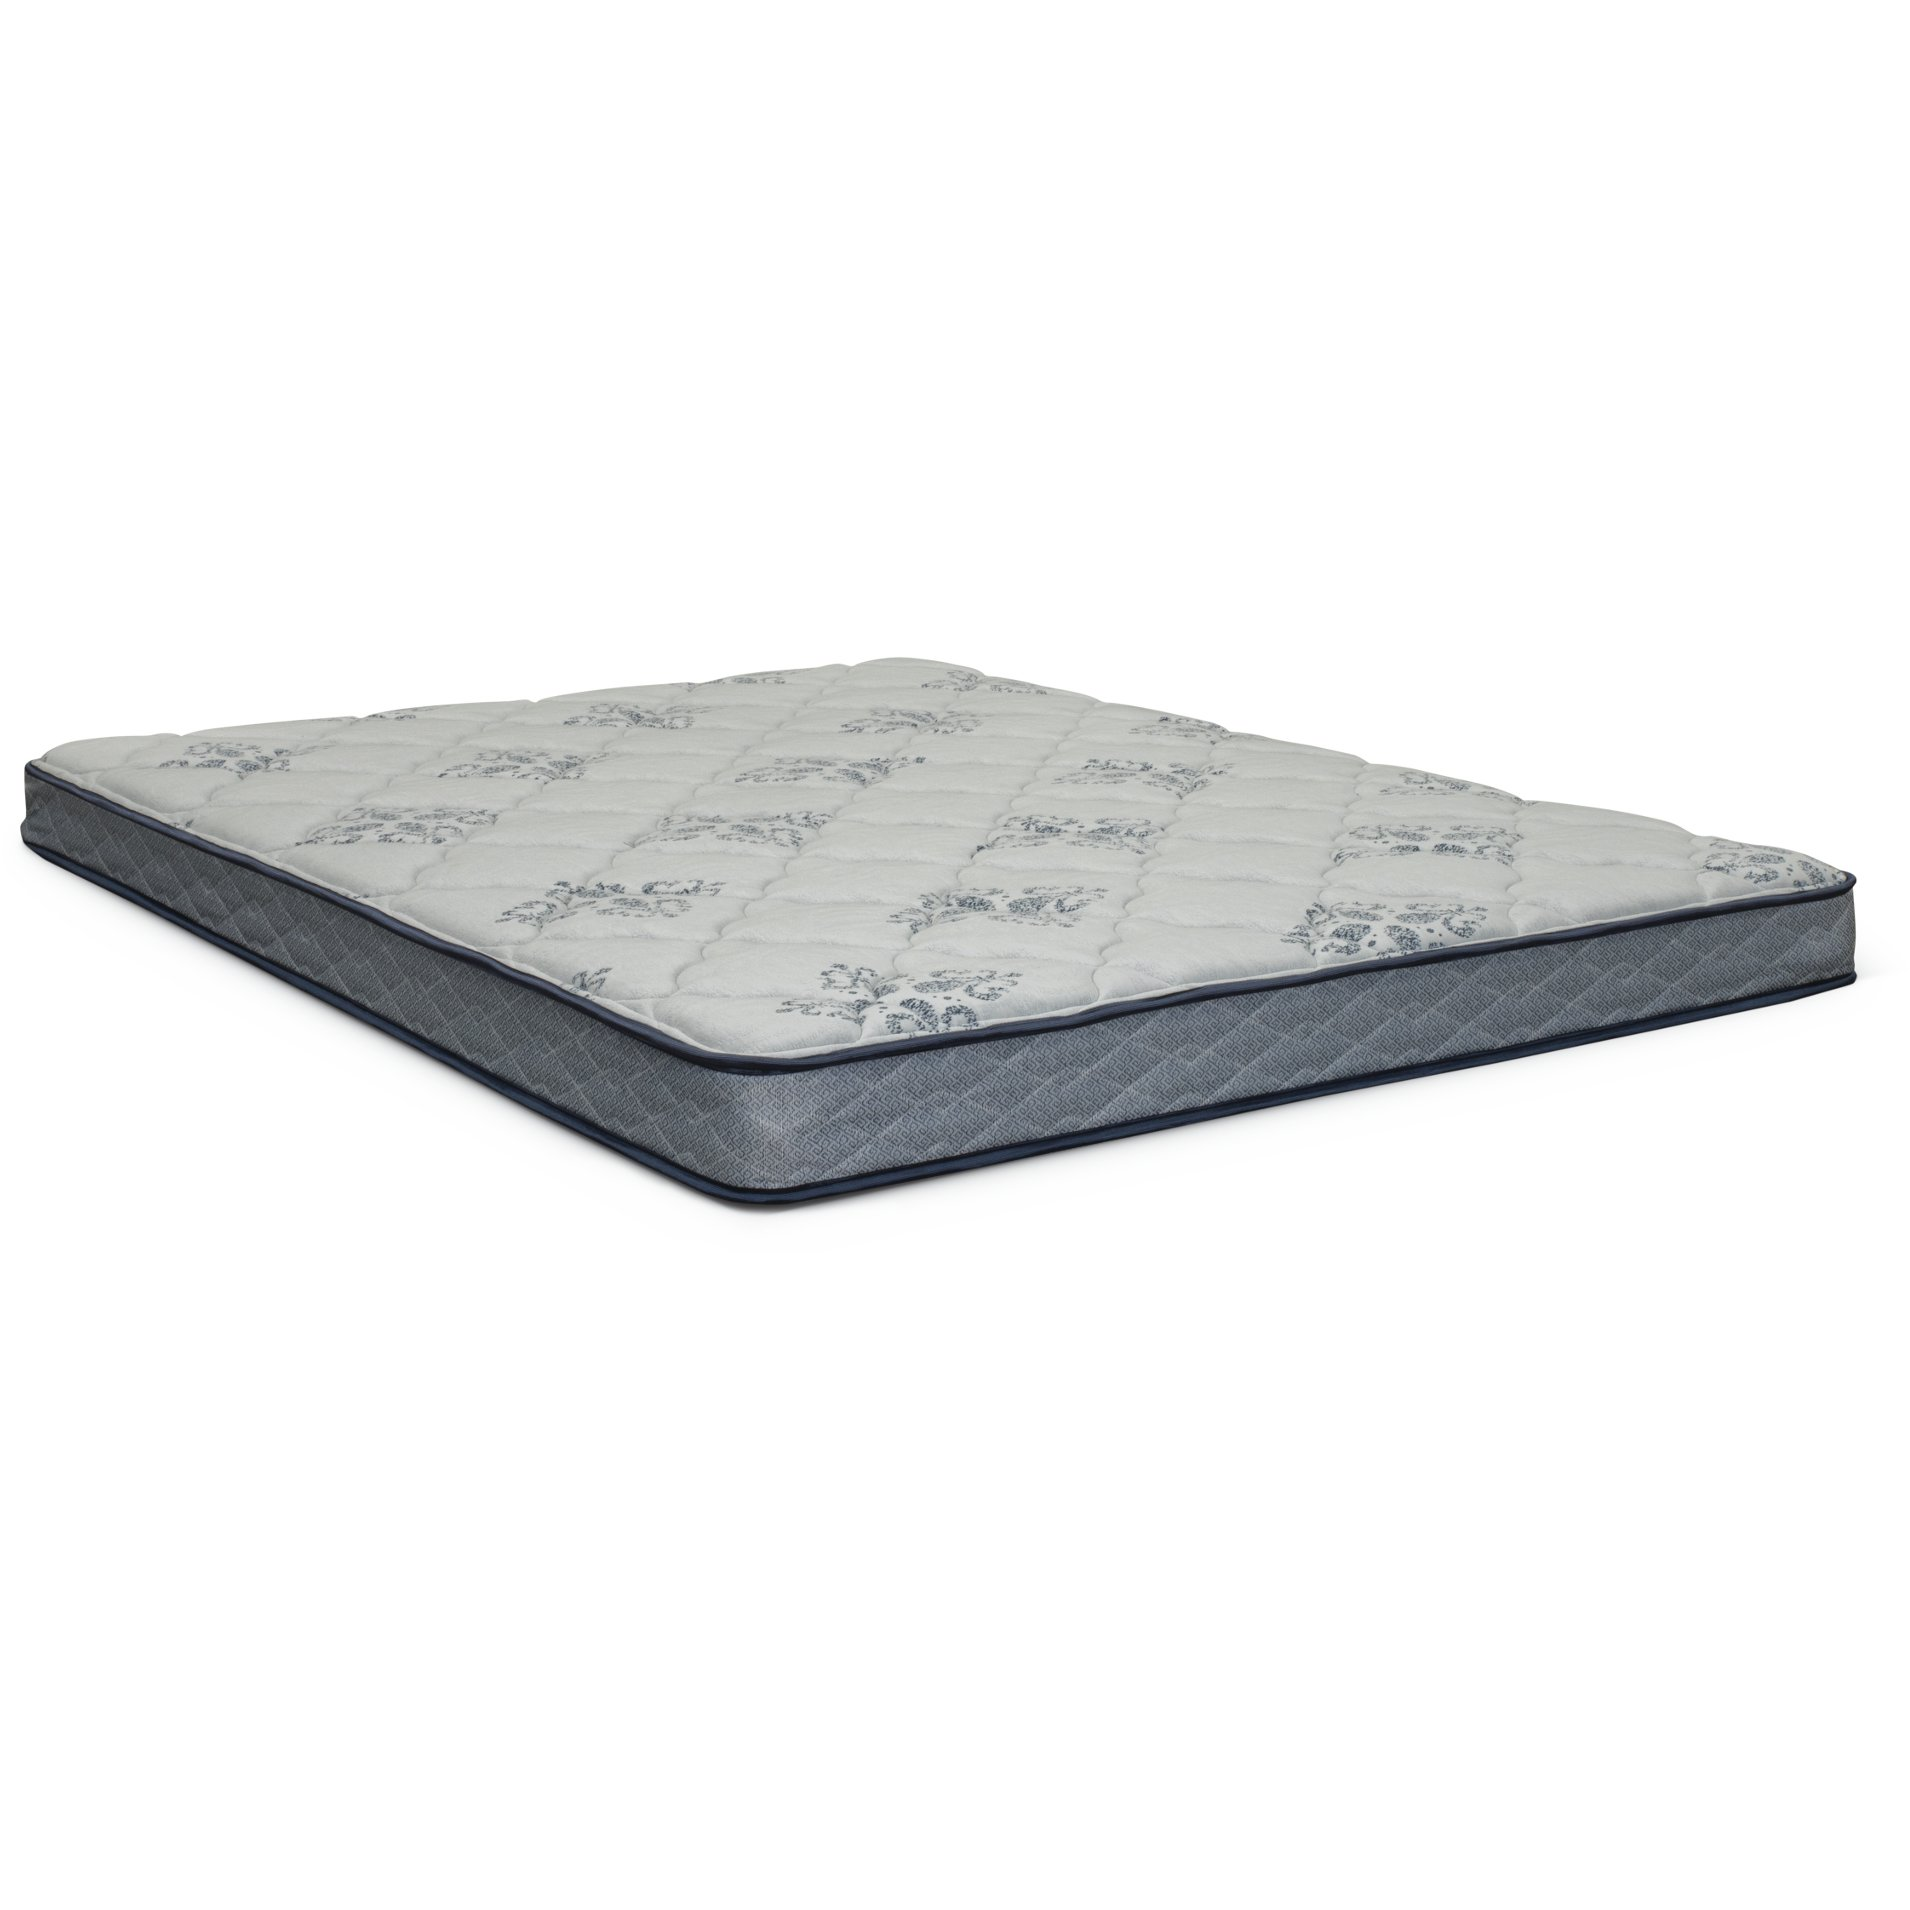 Mattresses For Sale In Our Mattress Store Rc Willey Furniture Store